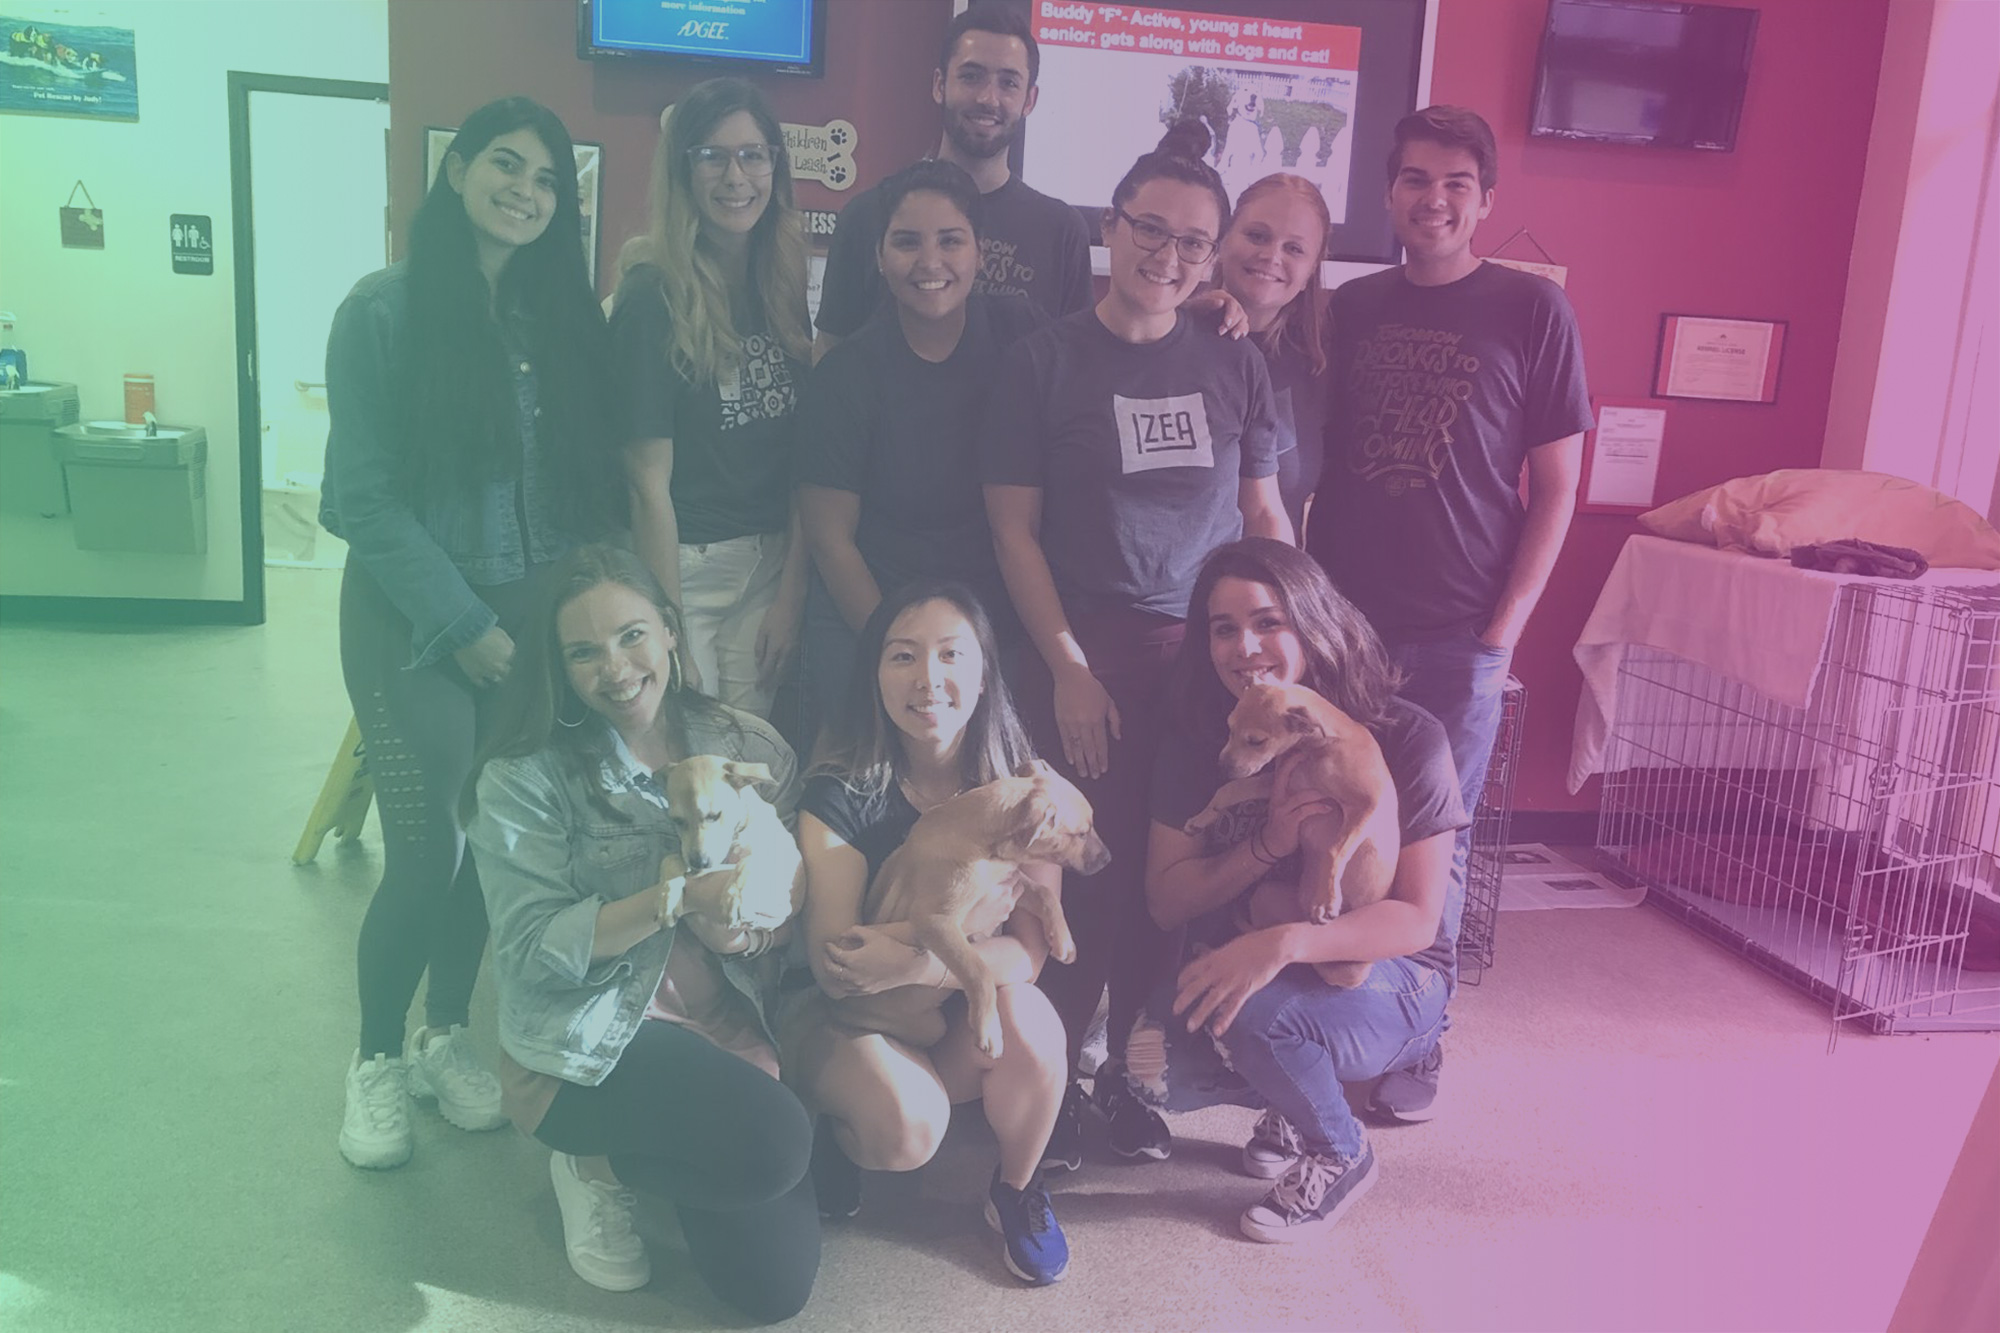 IZEA Partners with Pet Rescue by Judy and The Chicago Canine Rescue